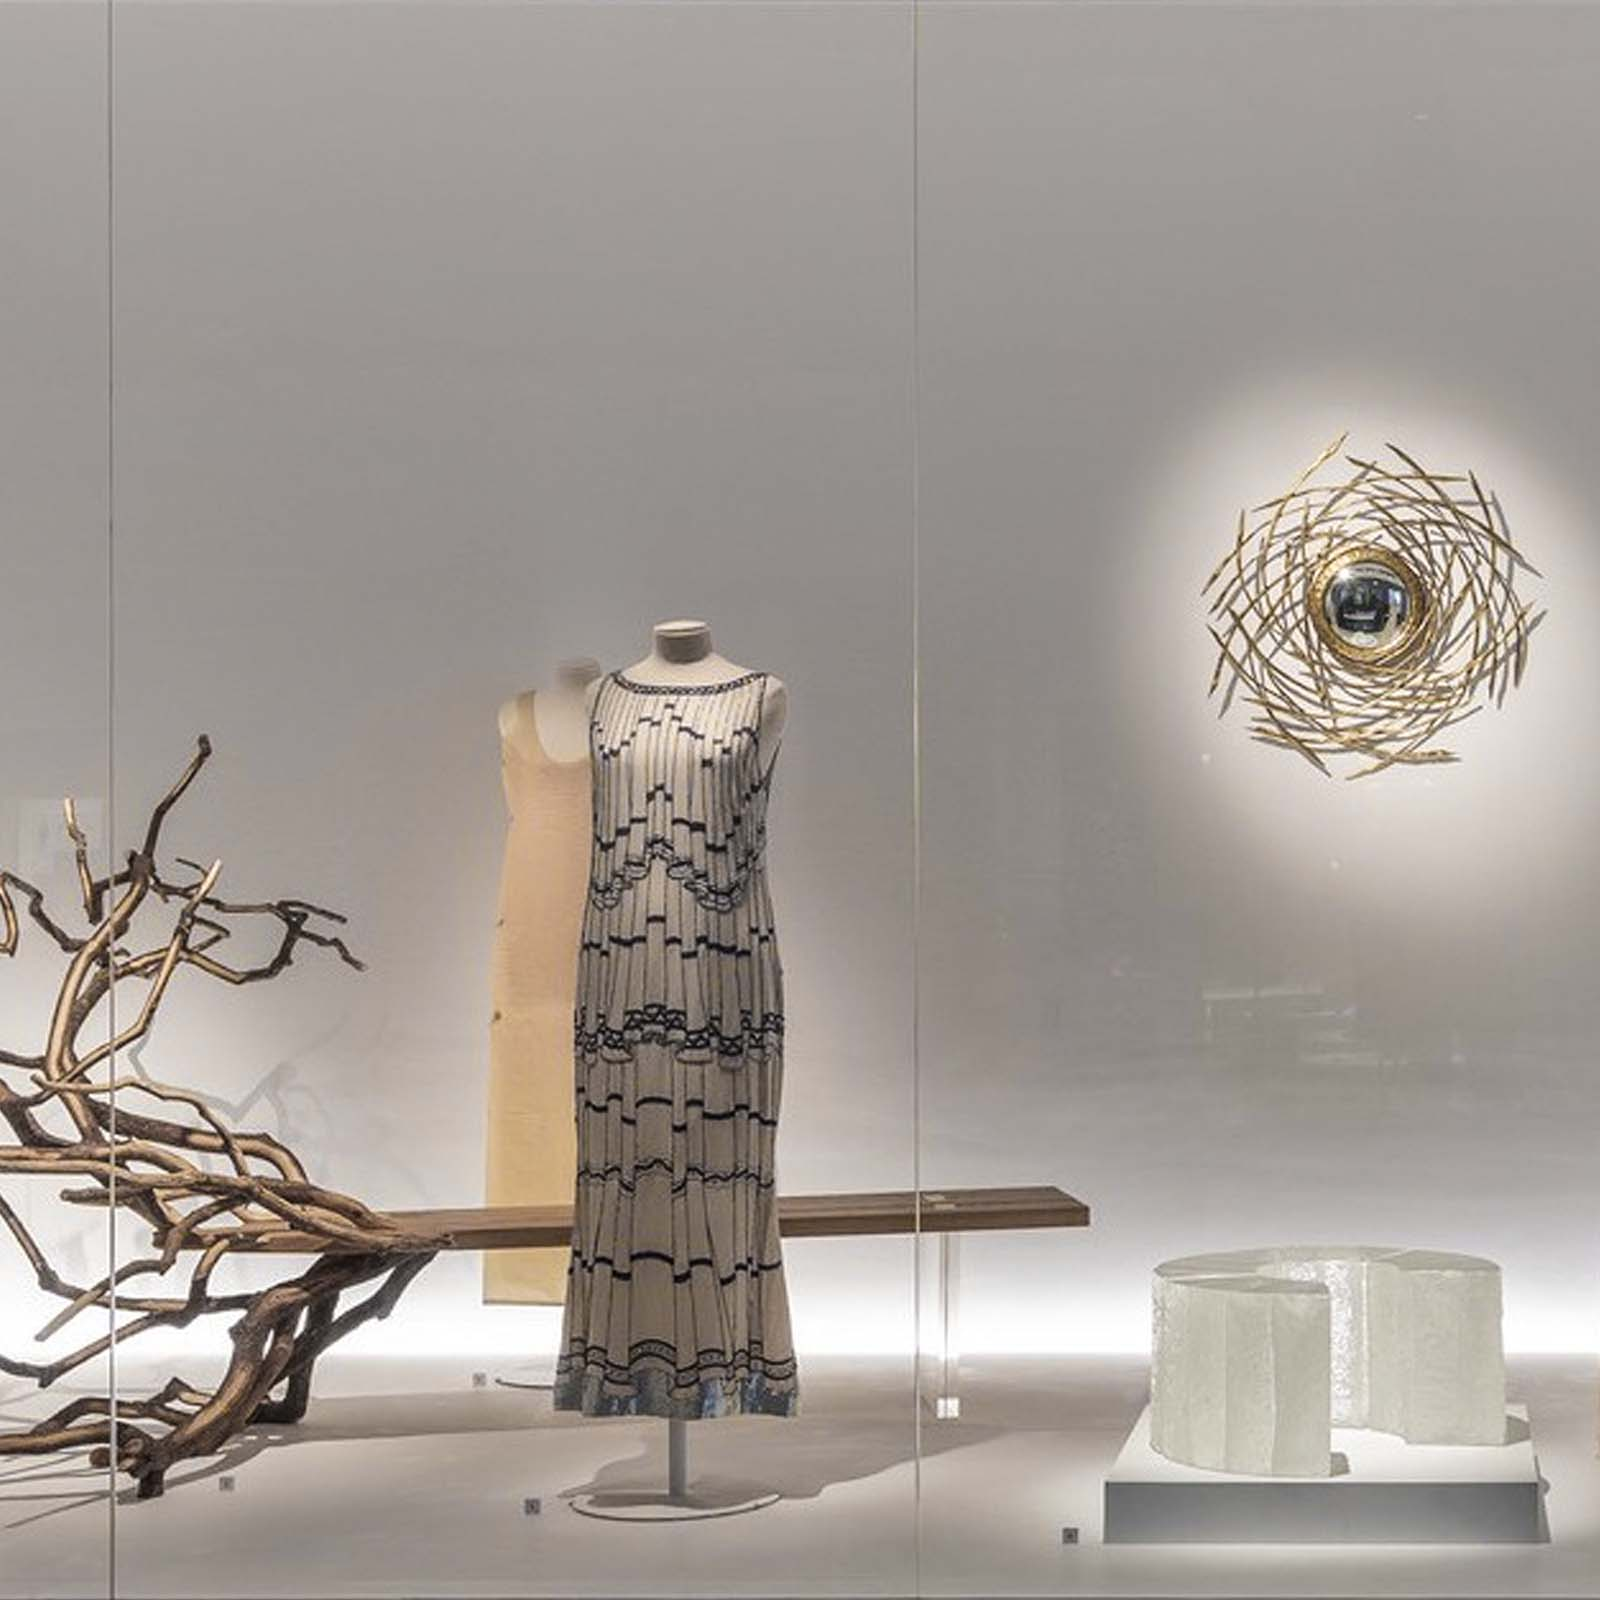 International Exhibition 10.000 years of Luxury in partnership with MAD Paris